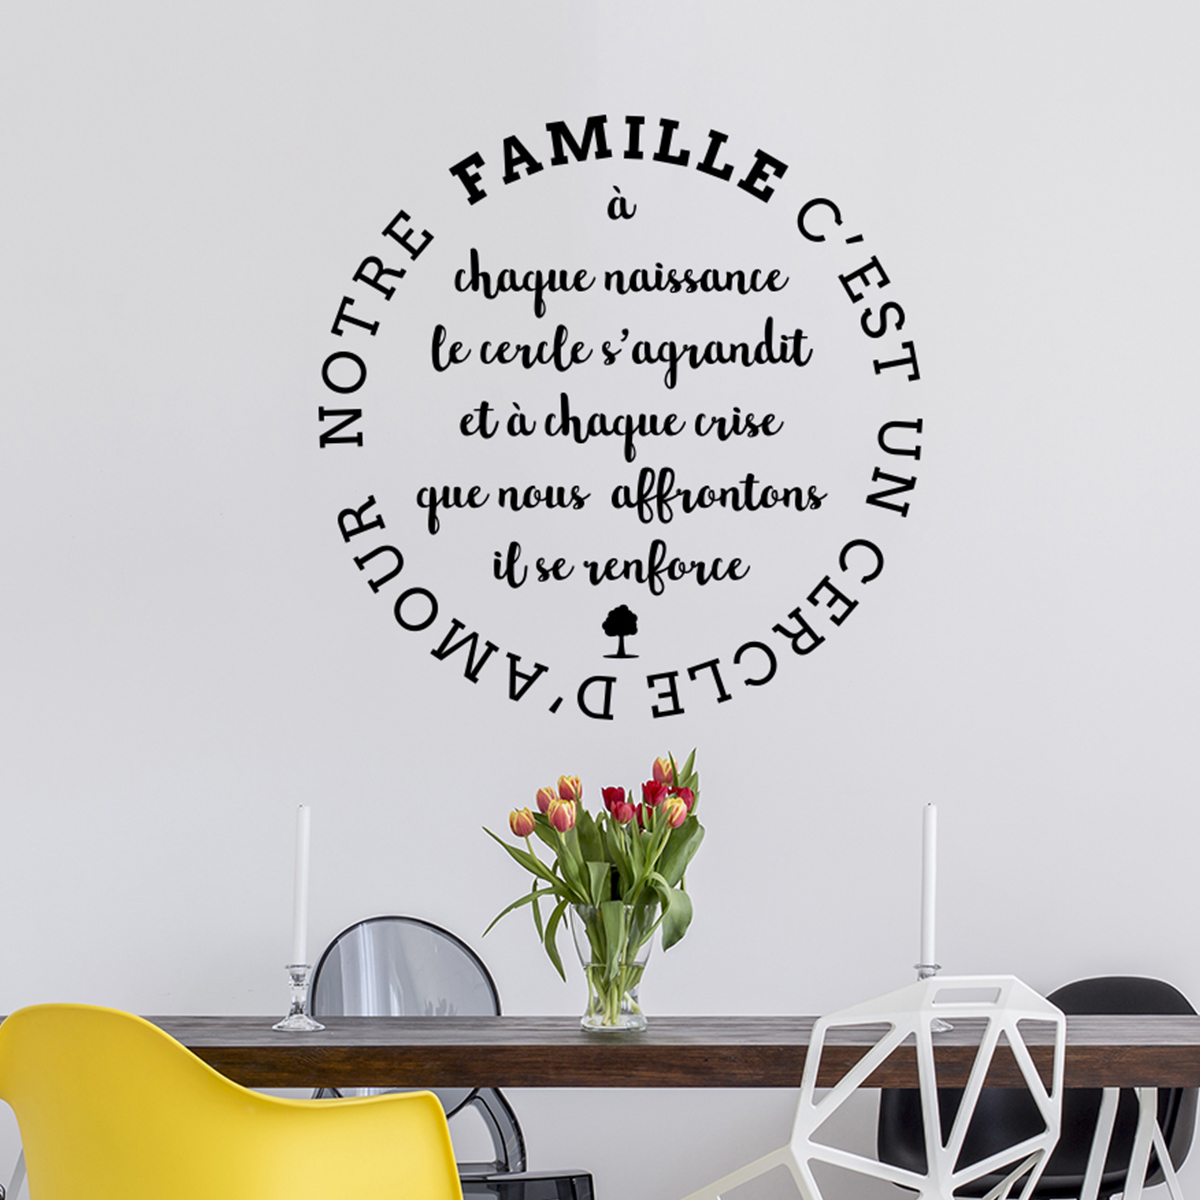 sticker citation notre famille c est l amour stickers citations fran ais ambiance sticker. Black Bedroom Furniture Sets. Home Design Ideas